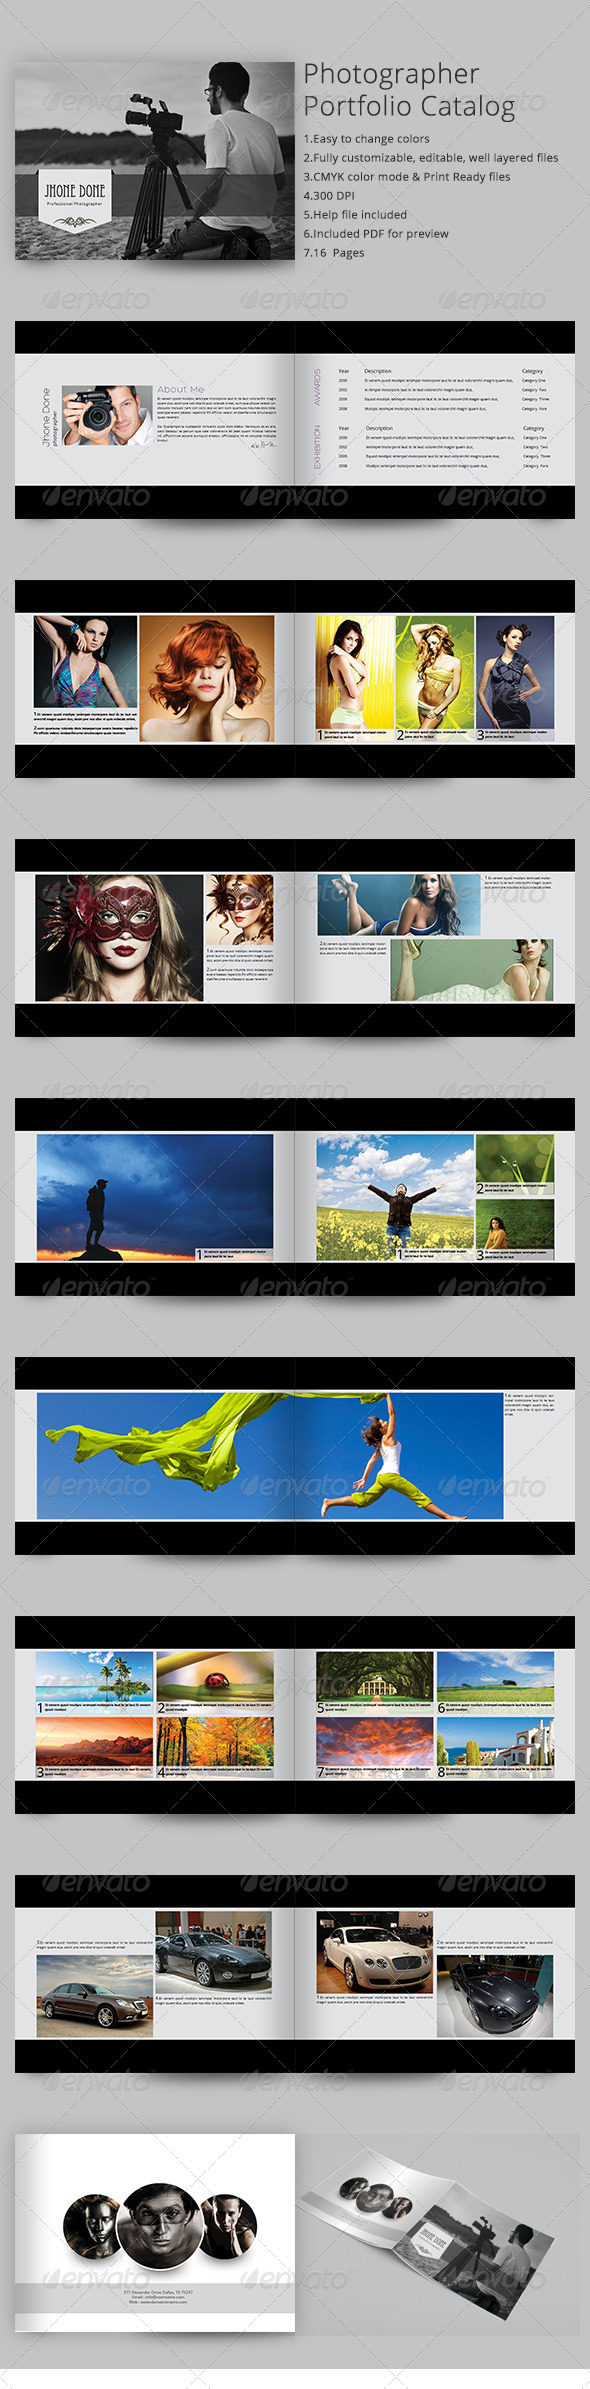 GraphicRiver Photographer Portfolio Catalog 6936173